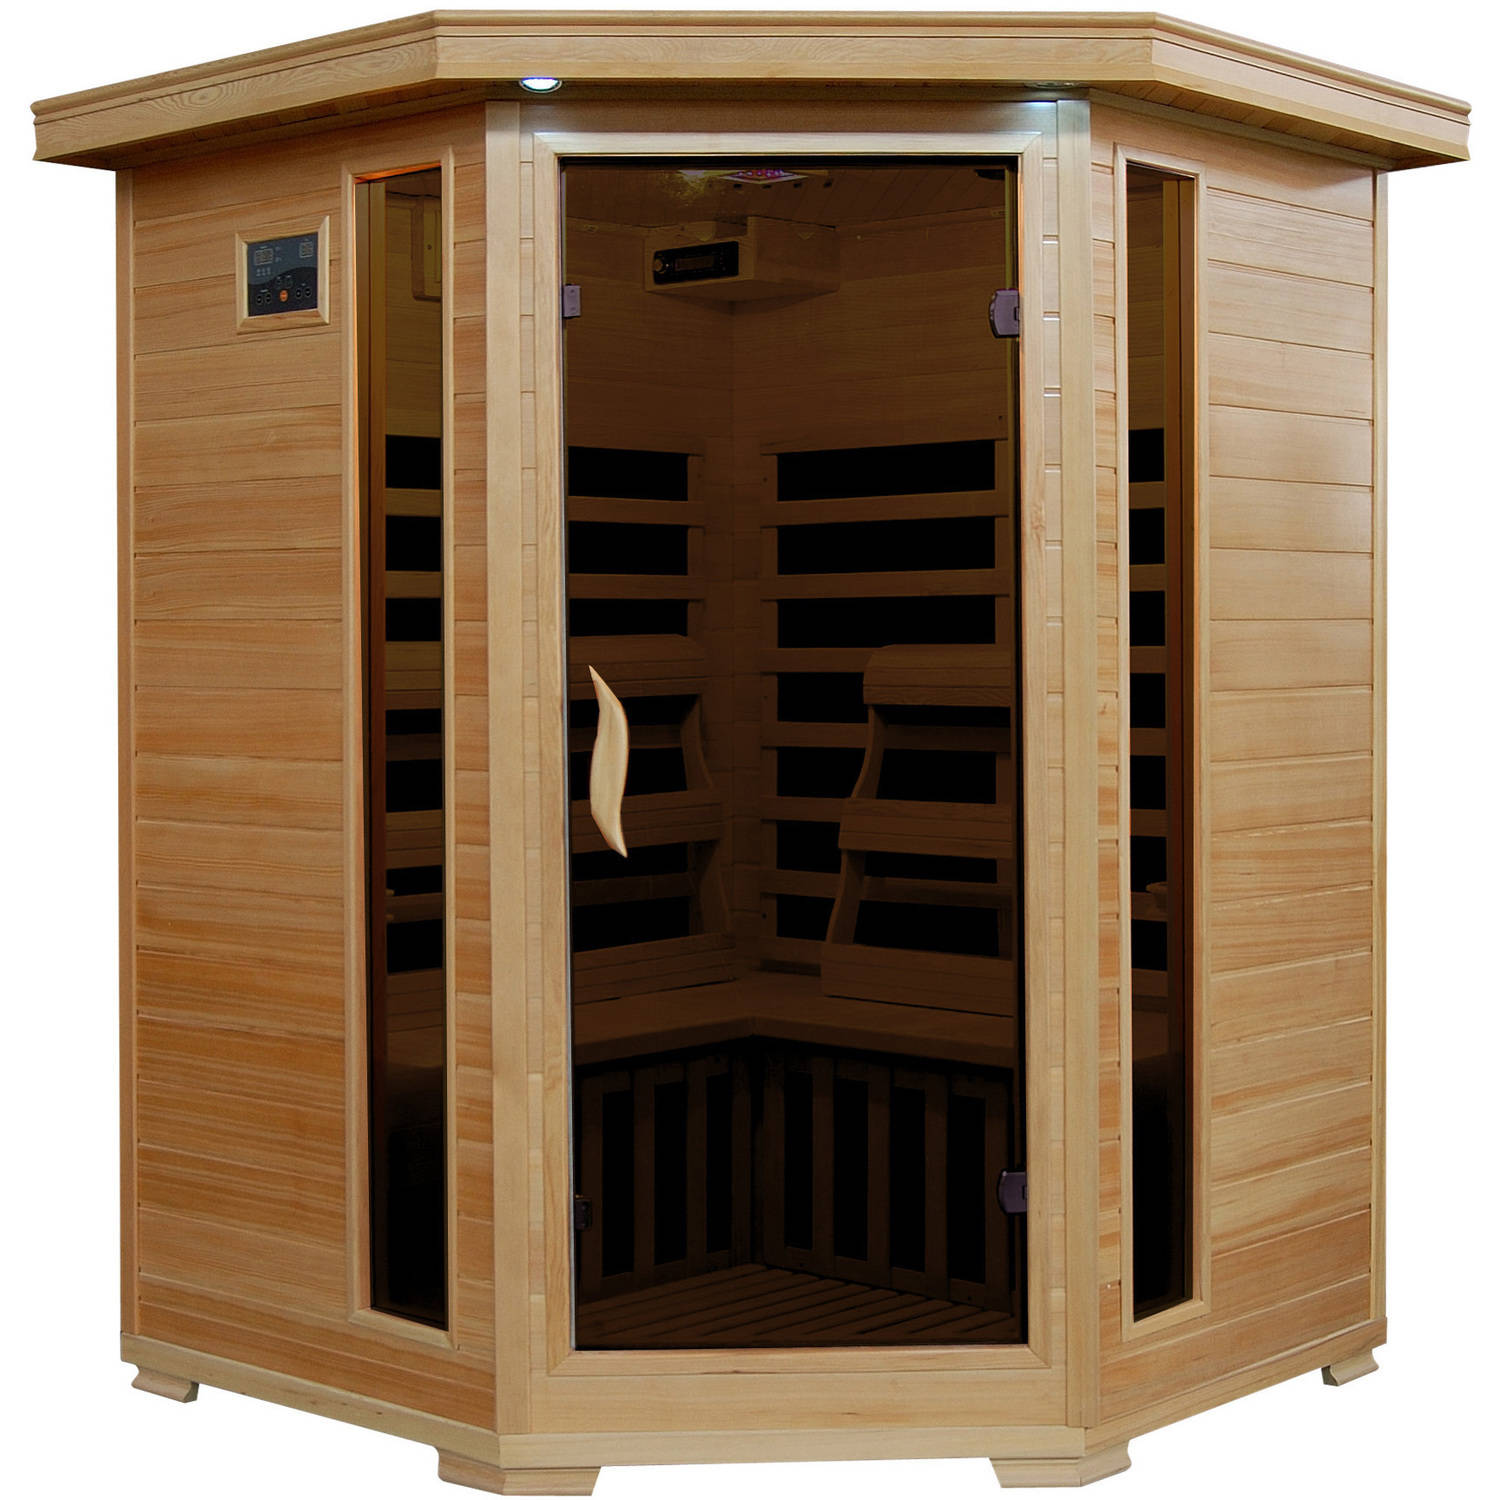 Radiant Saunas 3-Person Corner Carbon Infrared Sauna